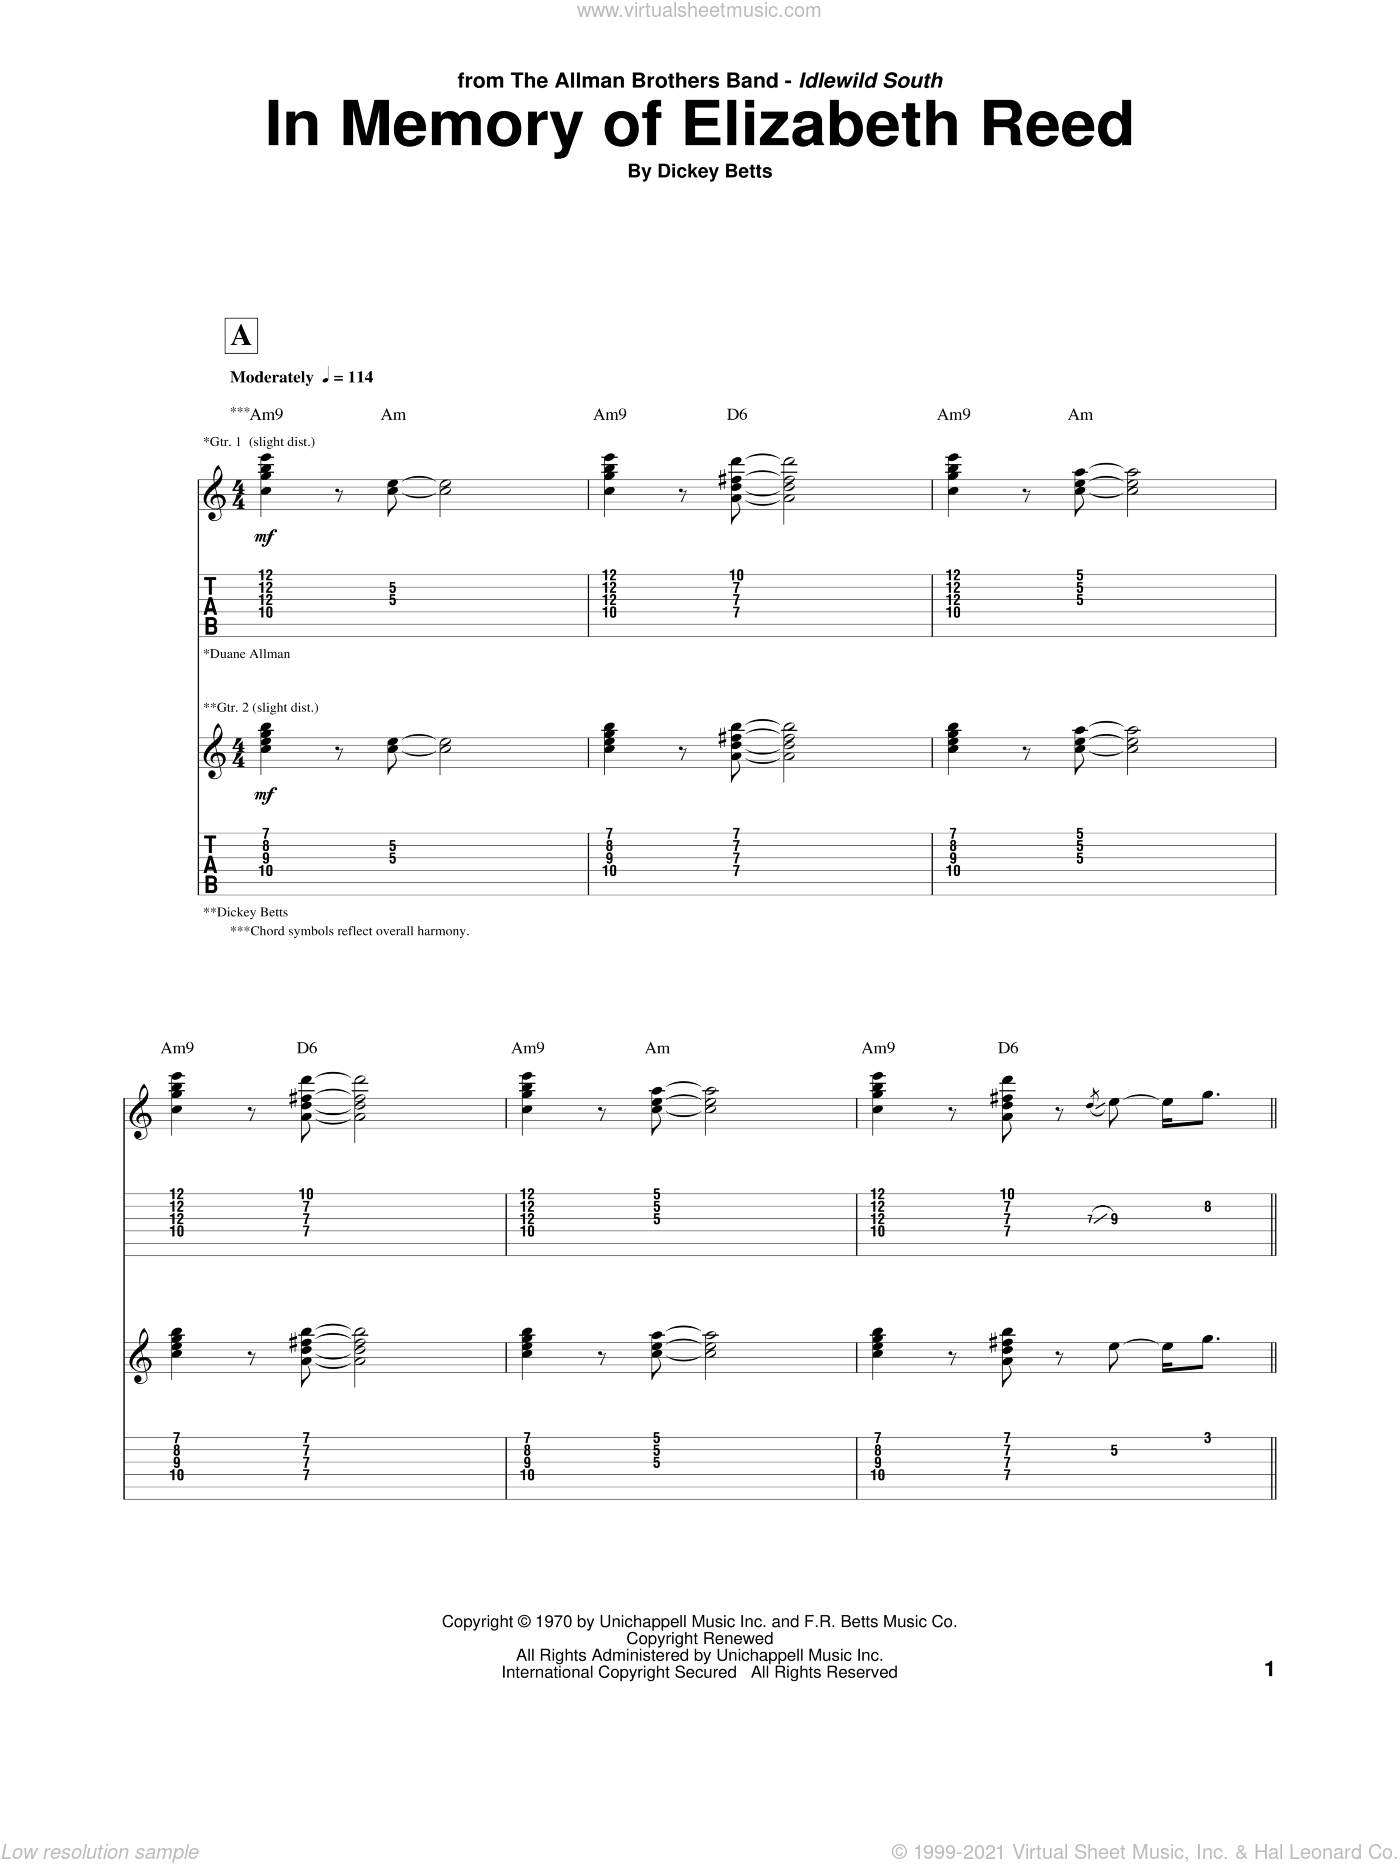 In Memory Of Elizabeth Reed sheet music for guitar (tablature) by Allman Brothers Band, The Allman Brothers Band and Dickey Betts, intermediate skill level